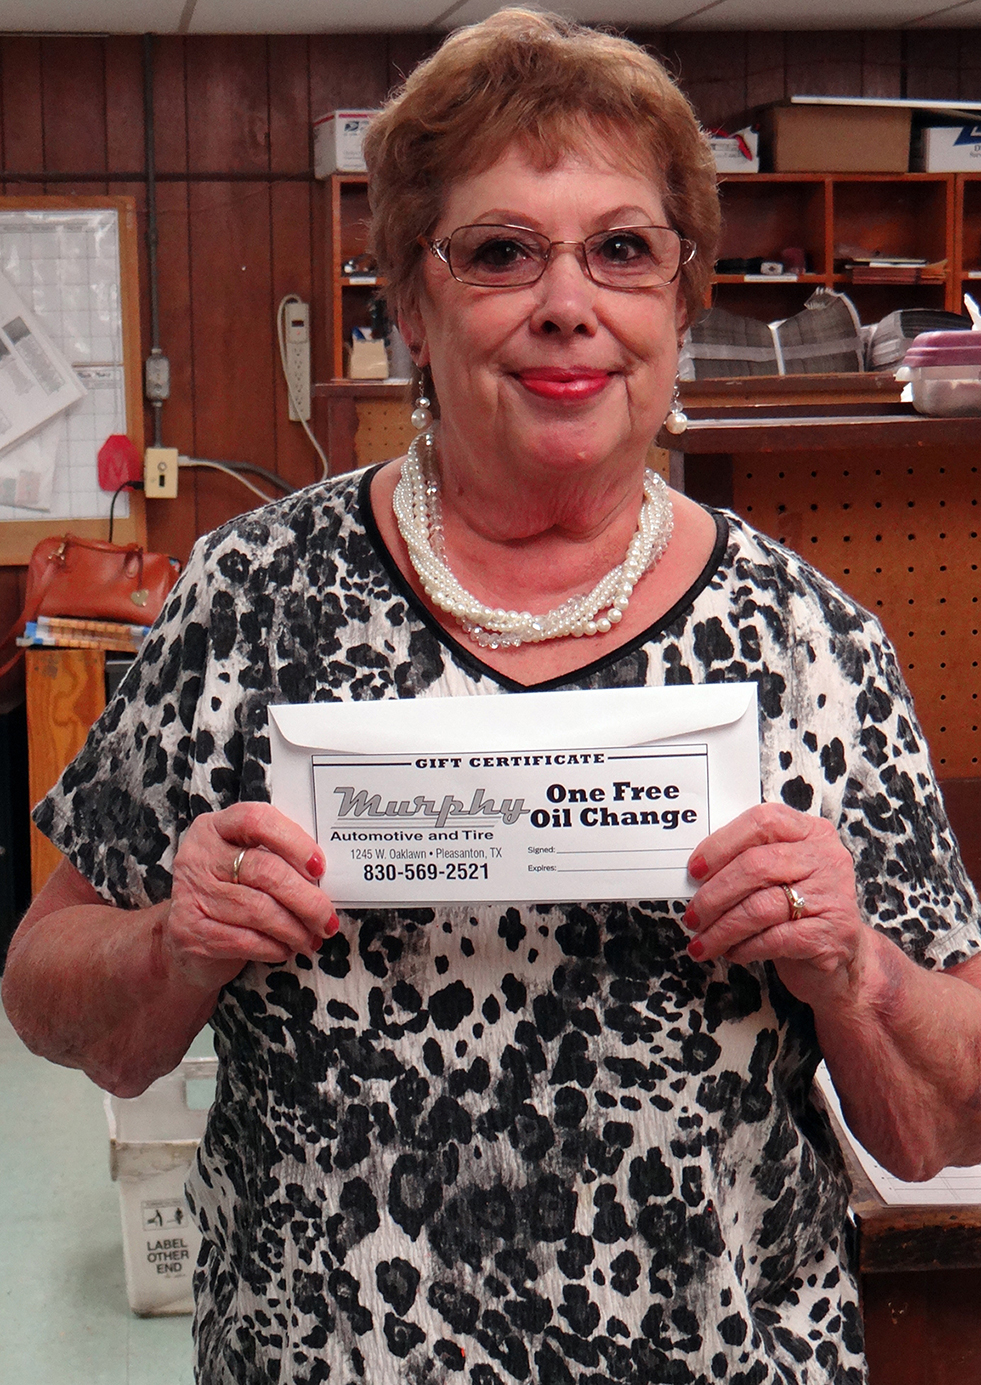 Mary Clyburn won a free oil change from Murphy's Auto playing Online Scavenger Hunt.